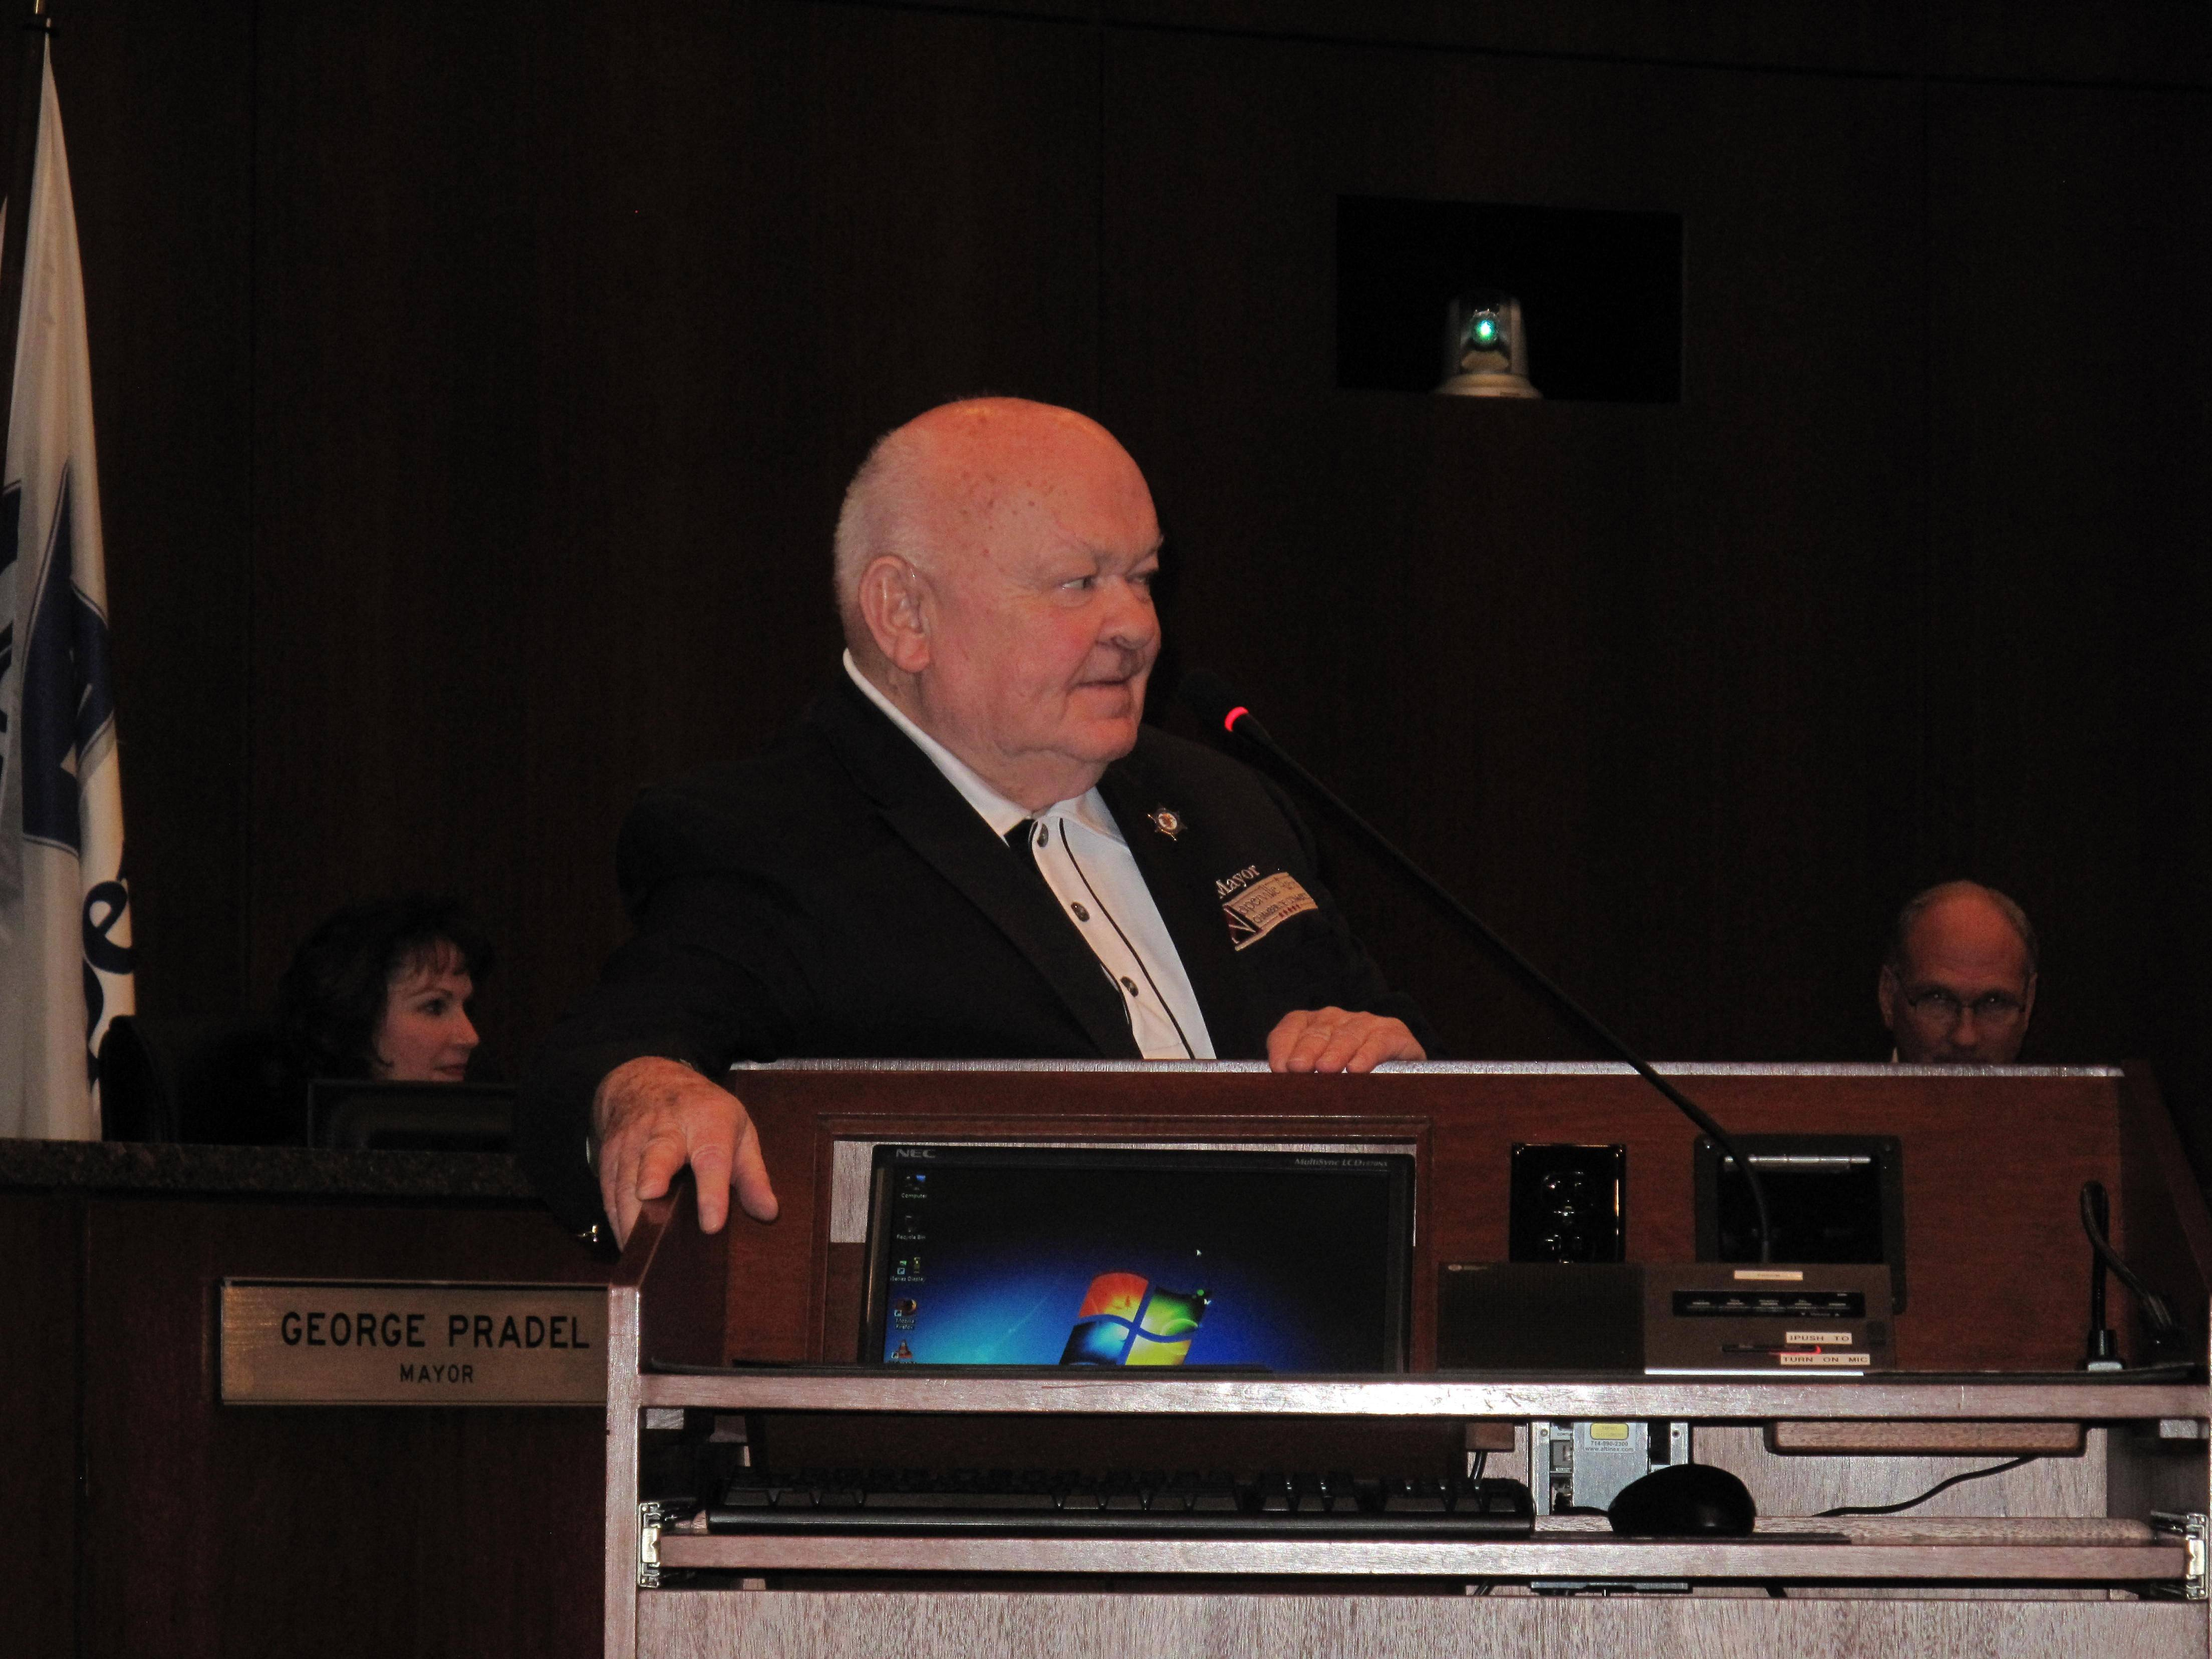 Naperville thanks longest-serving mayor Pradel for 'energy and enthusiasm'